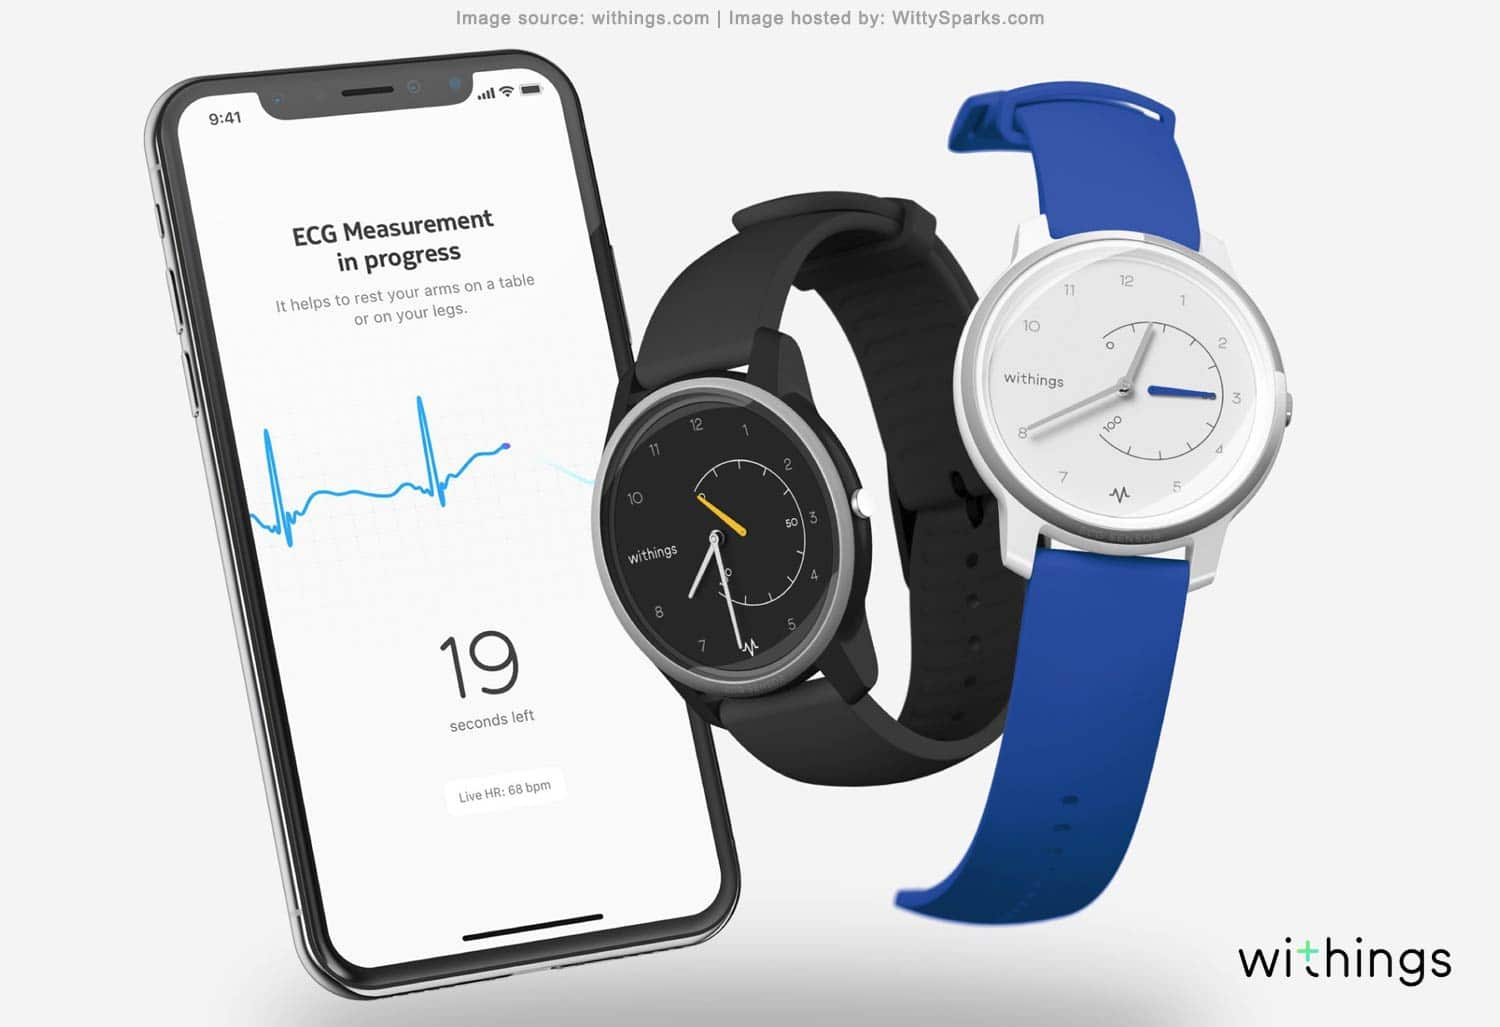 Move ECG - ECG Monitor & Activity watch - Withings